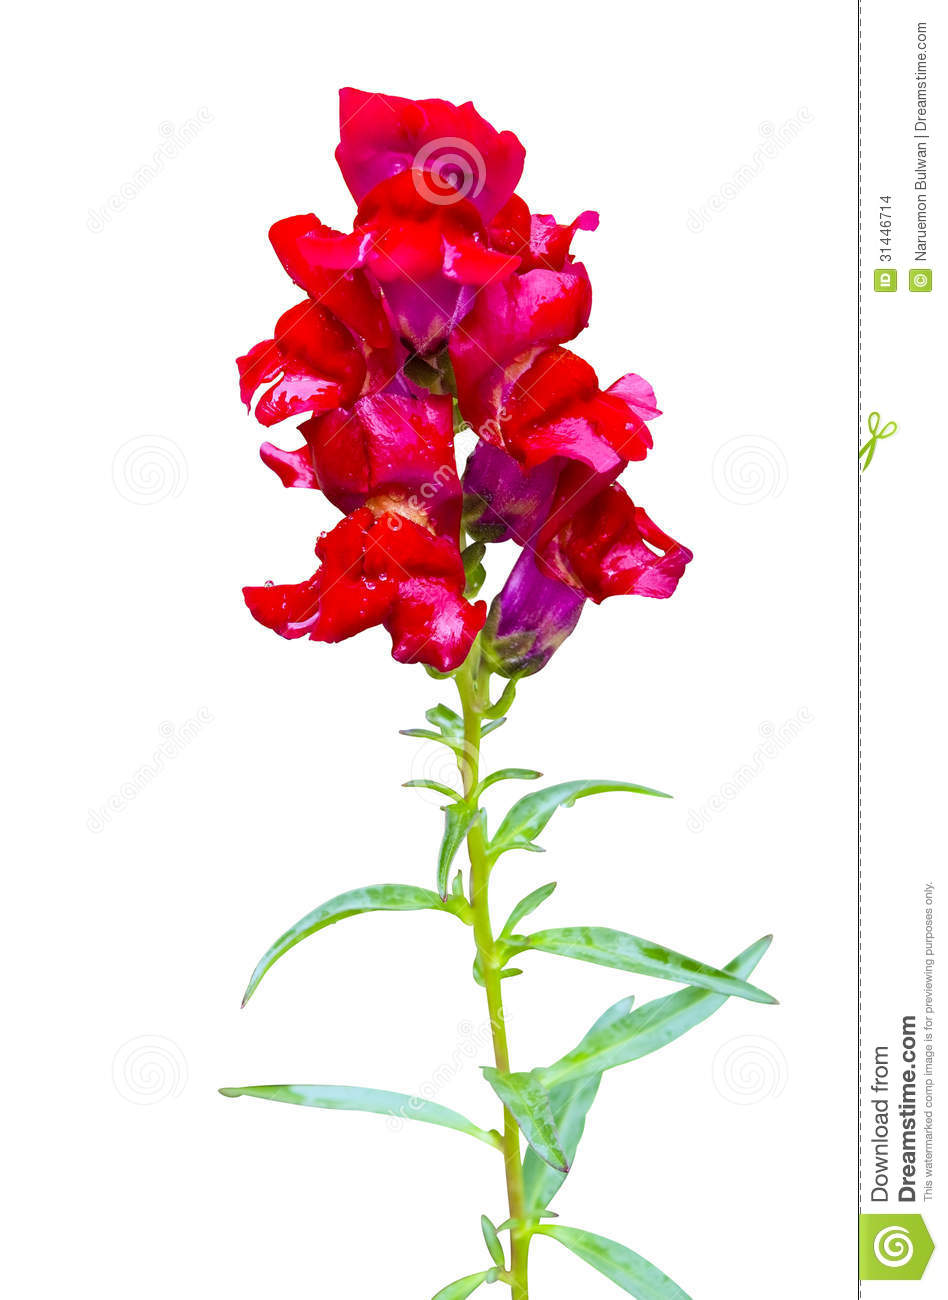 Red Snapdragon Flowers Isolated Stock Photo - Image of fresh, nature ...